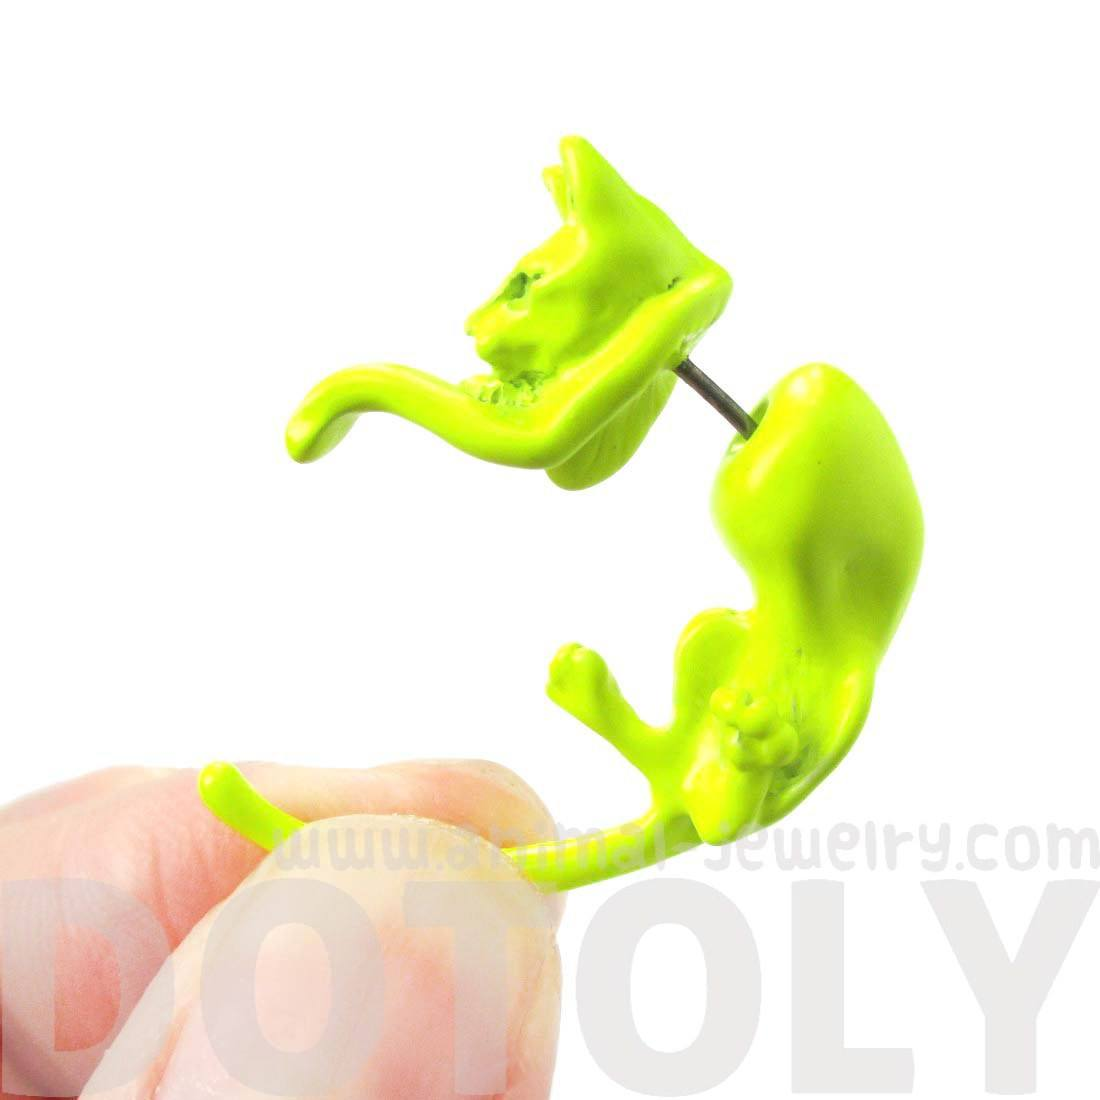 Kitty Cat Pet Animal Shaped Fake Gauge Stud Earrings in Neon Yellow